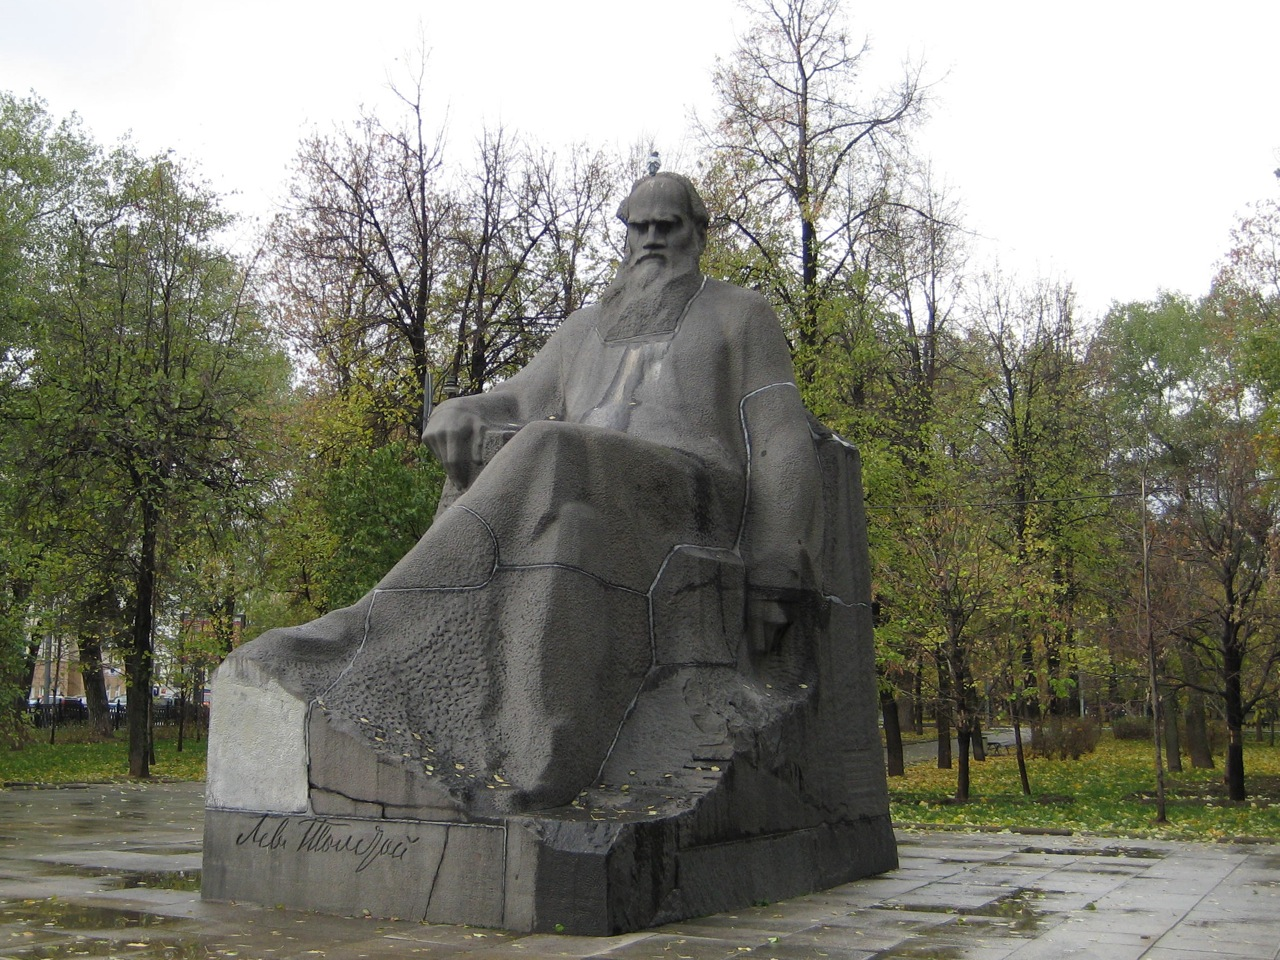 tolstoy-with-a-pigeon-on-his-head